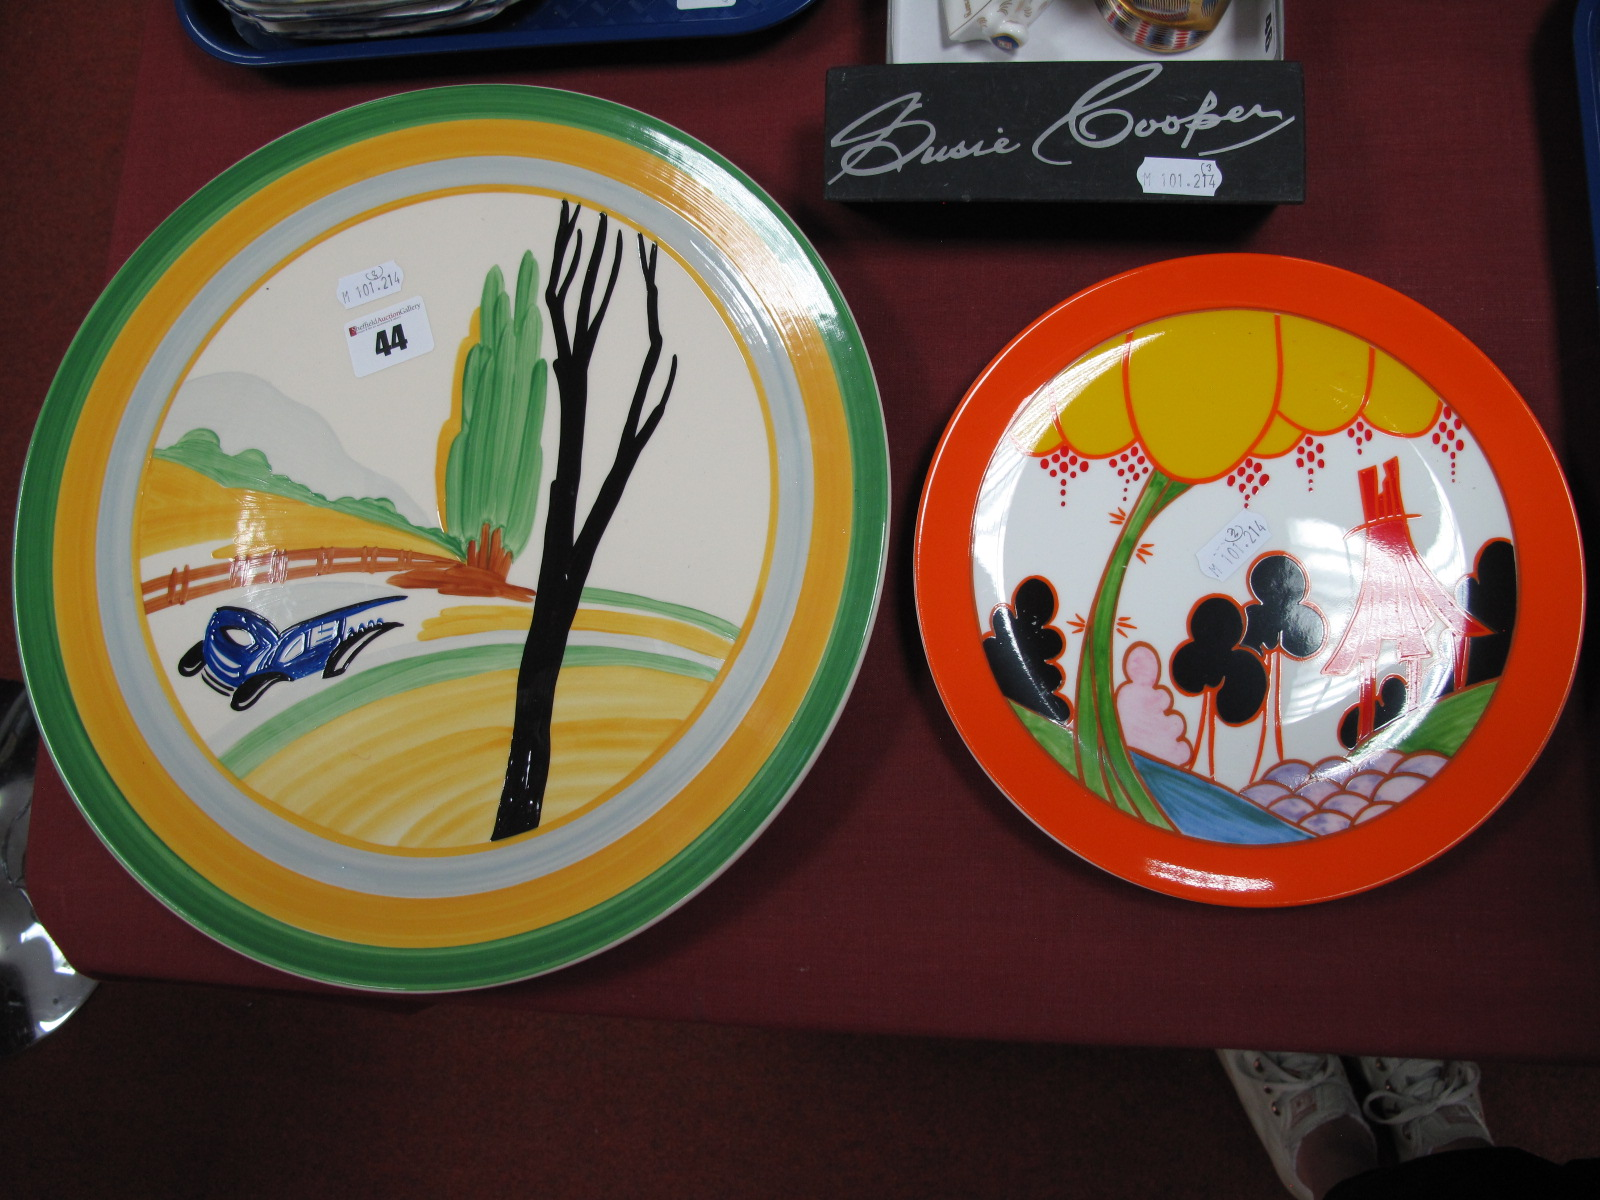 Lot 44 - Wedgwood Susie Cooper Collector's Club Plaque, No. 1 'Panorama'; Wedgwood Clarice Cliff '